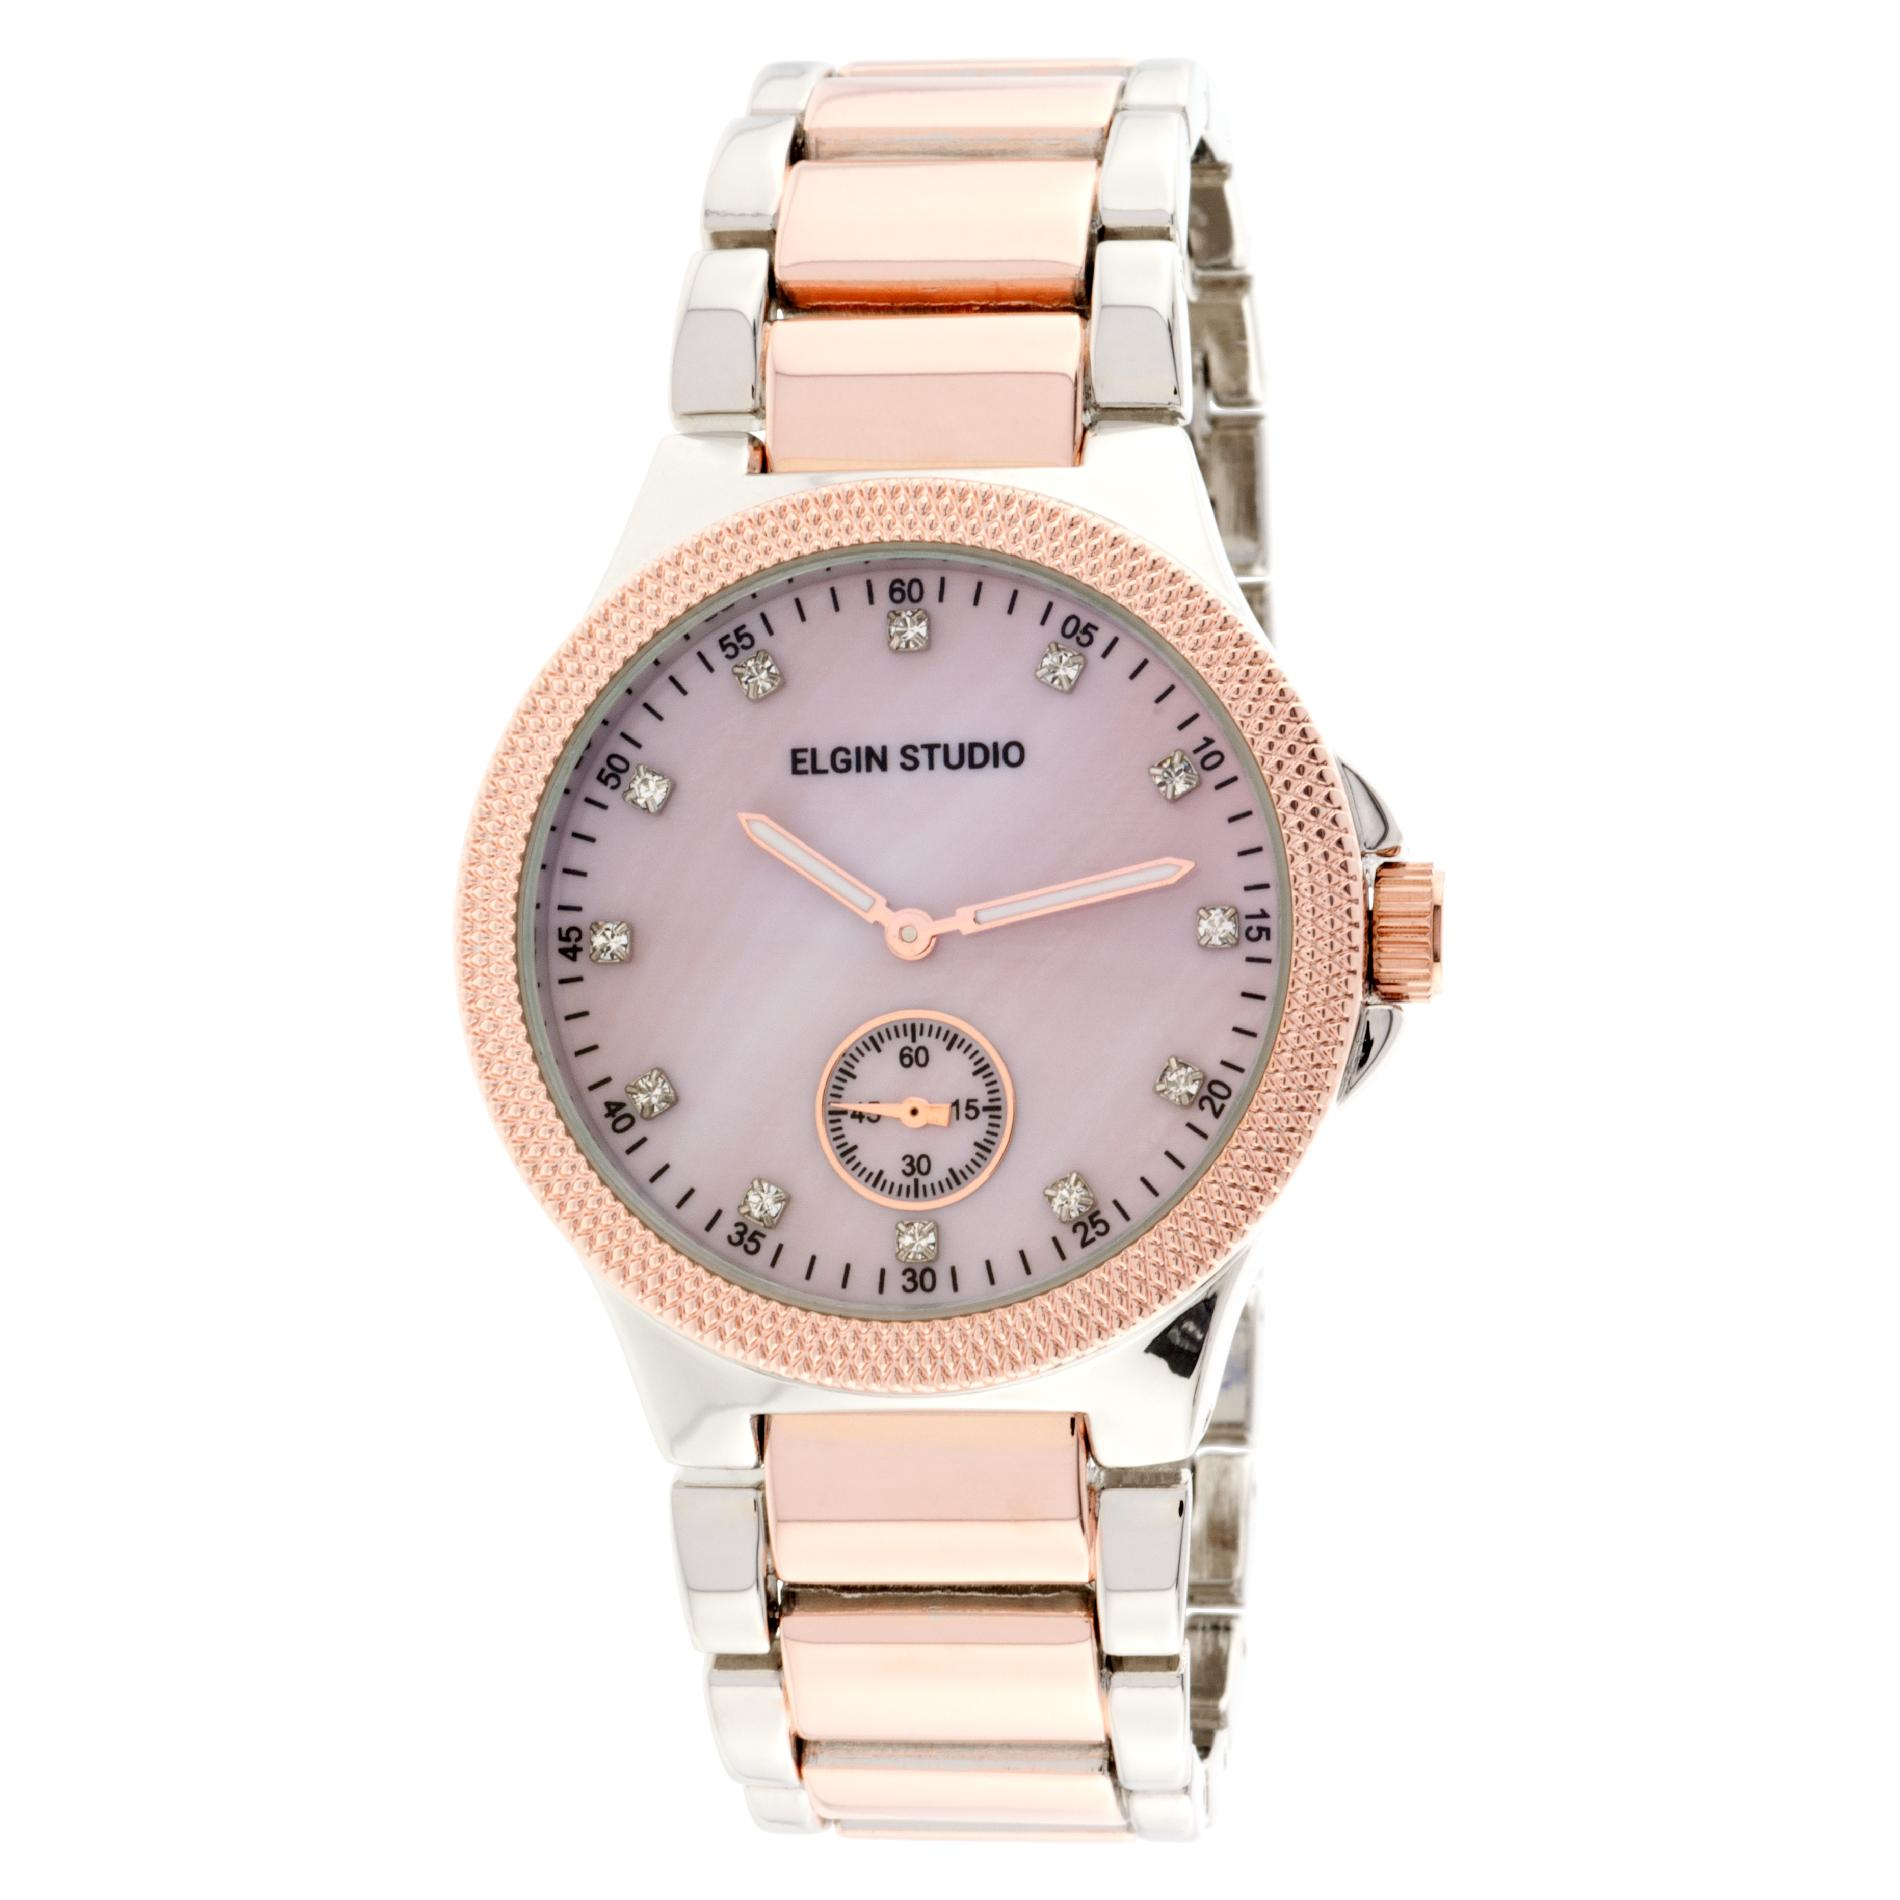 Elgin Ladies Two-tone Bracelet Watch w/ Pink Mother-of-Pearl Dial and Crystal Accents